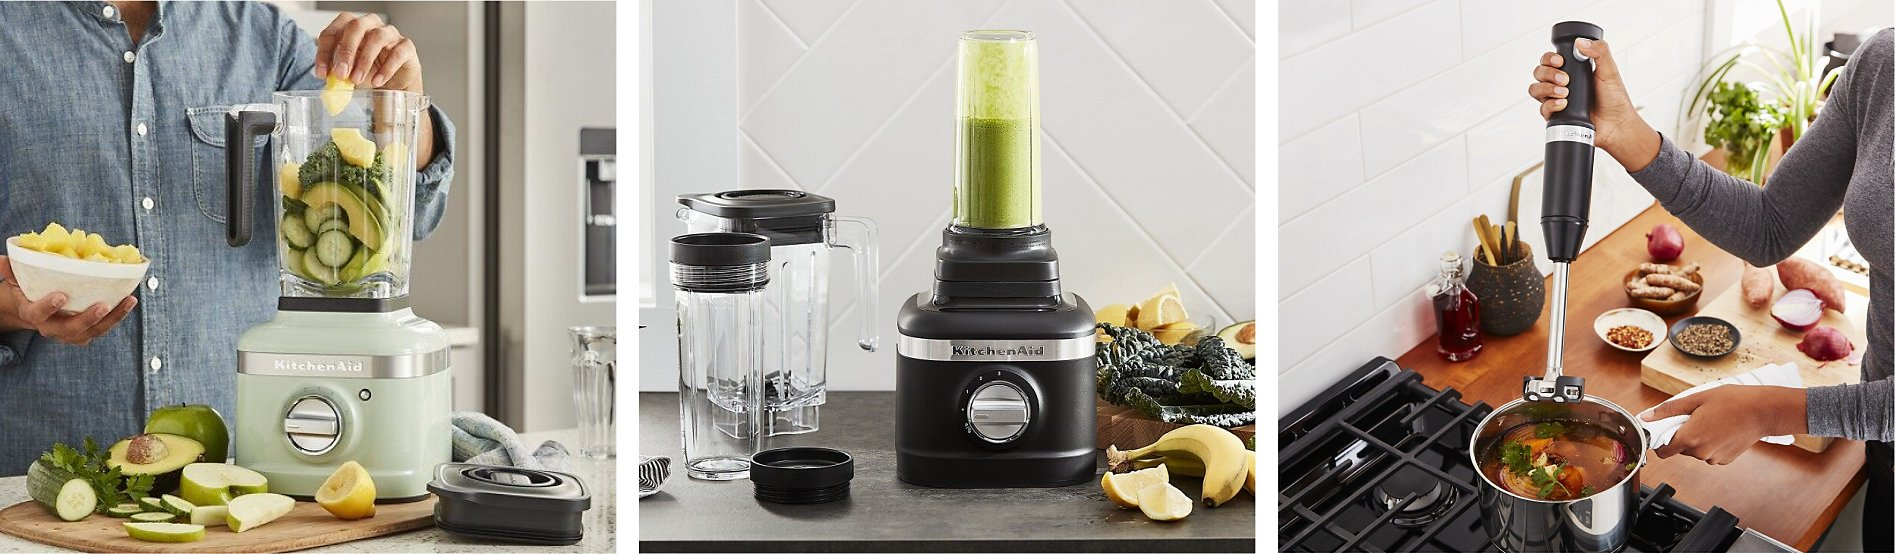 Three types of blenders being used: A countertop blender, personal blender and immersion blender